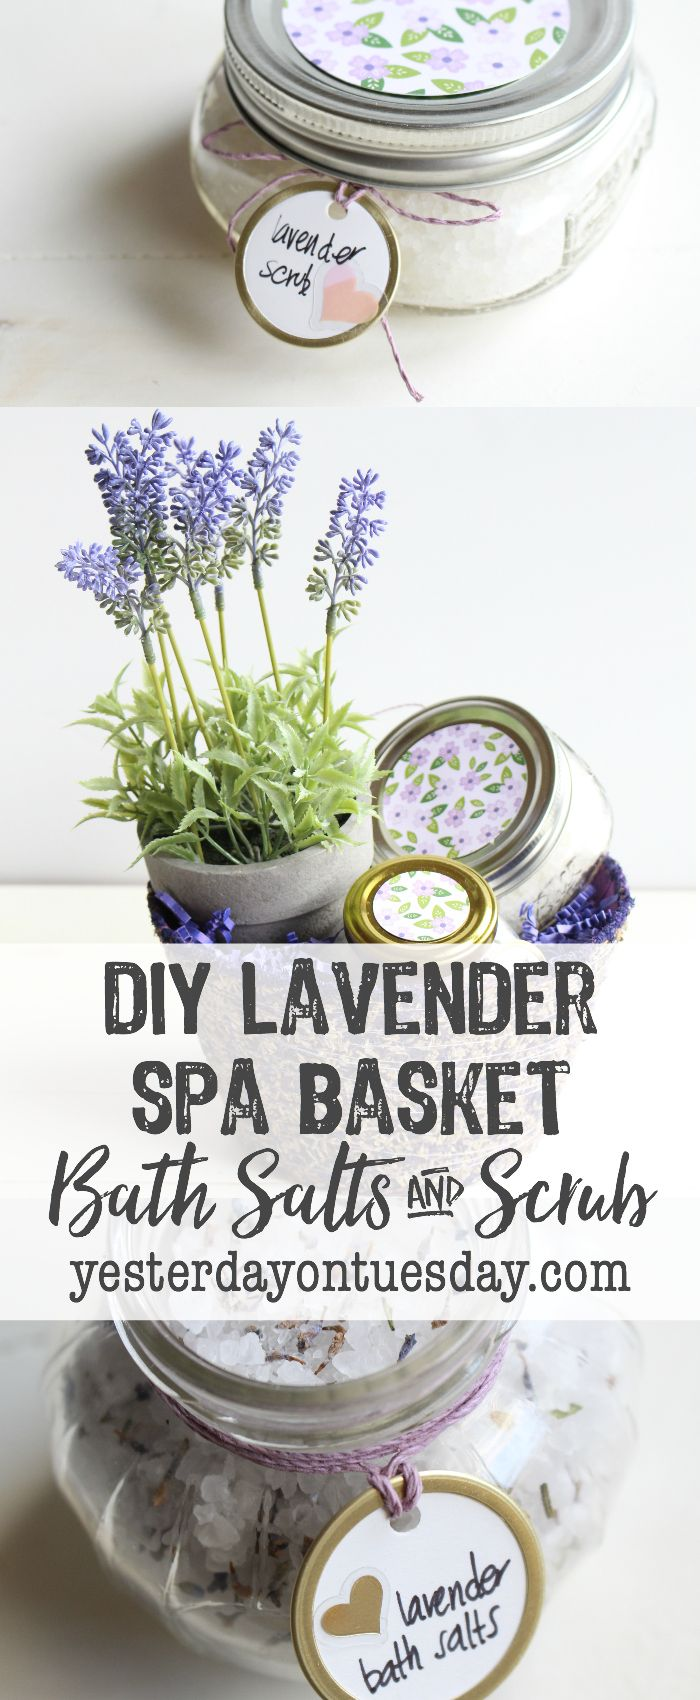 DIY Lavender Spa Basket with easy Lavender Bath Salts and Lavender Scrub recipes. Thoughtful gift idea for Mother's Day, teacher appreciation, or for a friend's birthday! gift | lavender | mason jars | bath salts | scrub